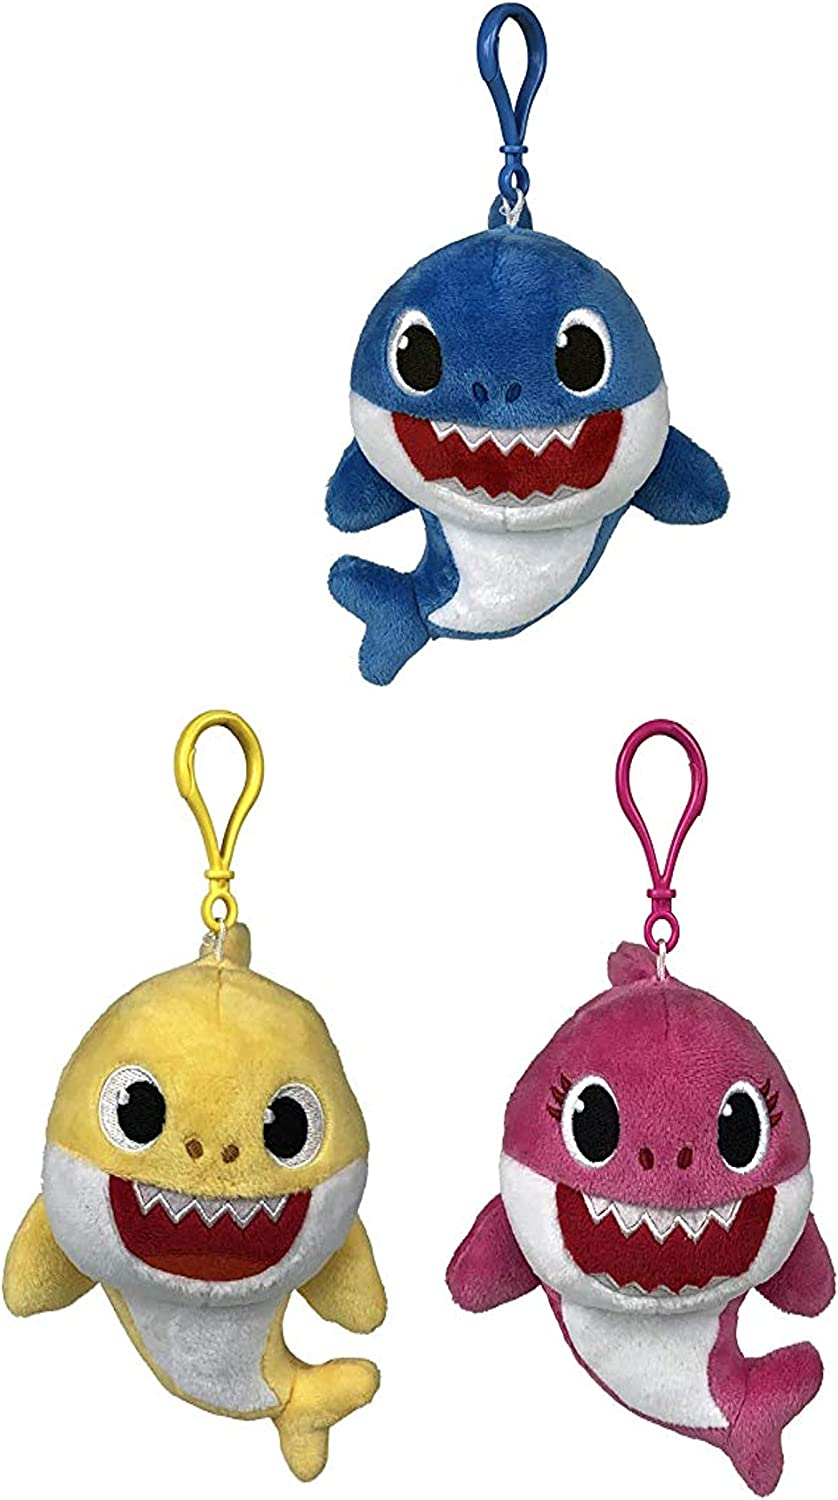 Pinkfong Baby Shark Plush Keychain Set - Baby Shark, Mommy Shark, Daddy Shark Mini Keychain Plush Stuffed Animal Clip for Bags, Lunch Boxes, Backpacks